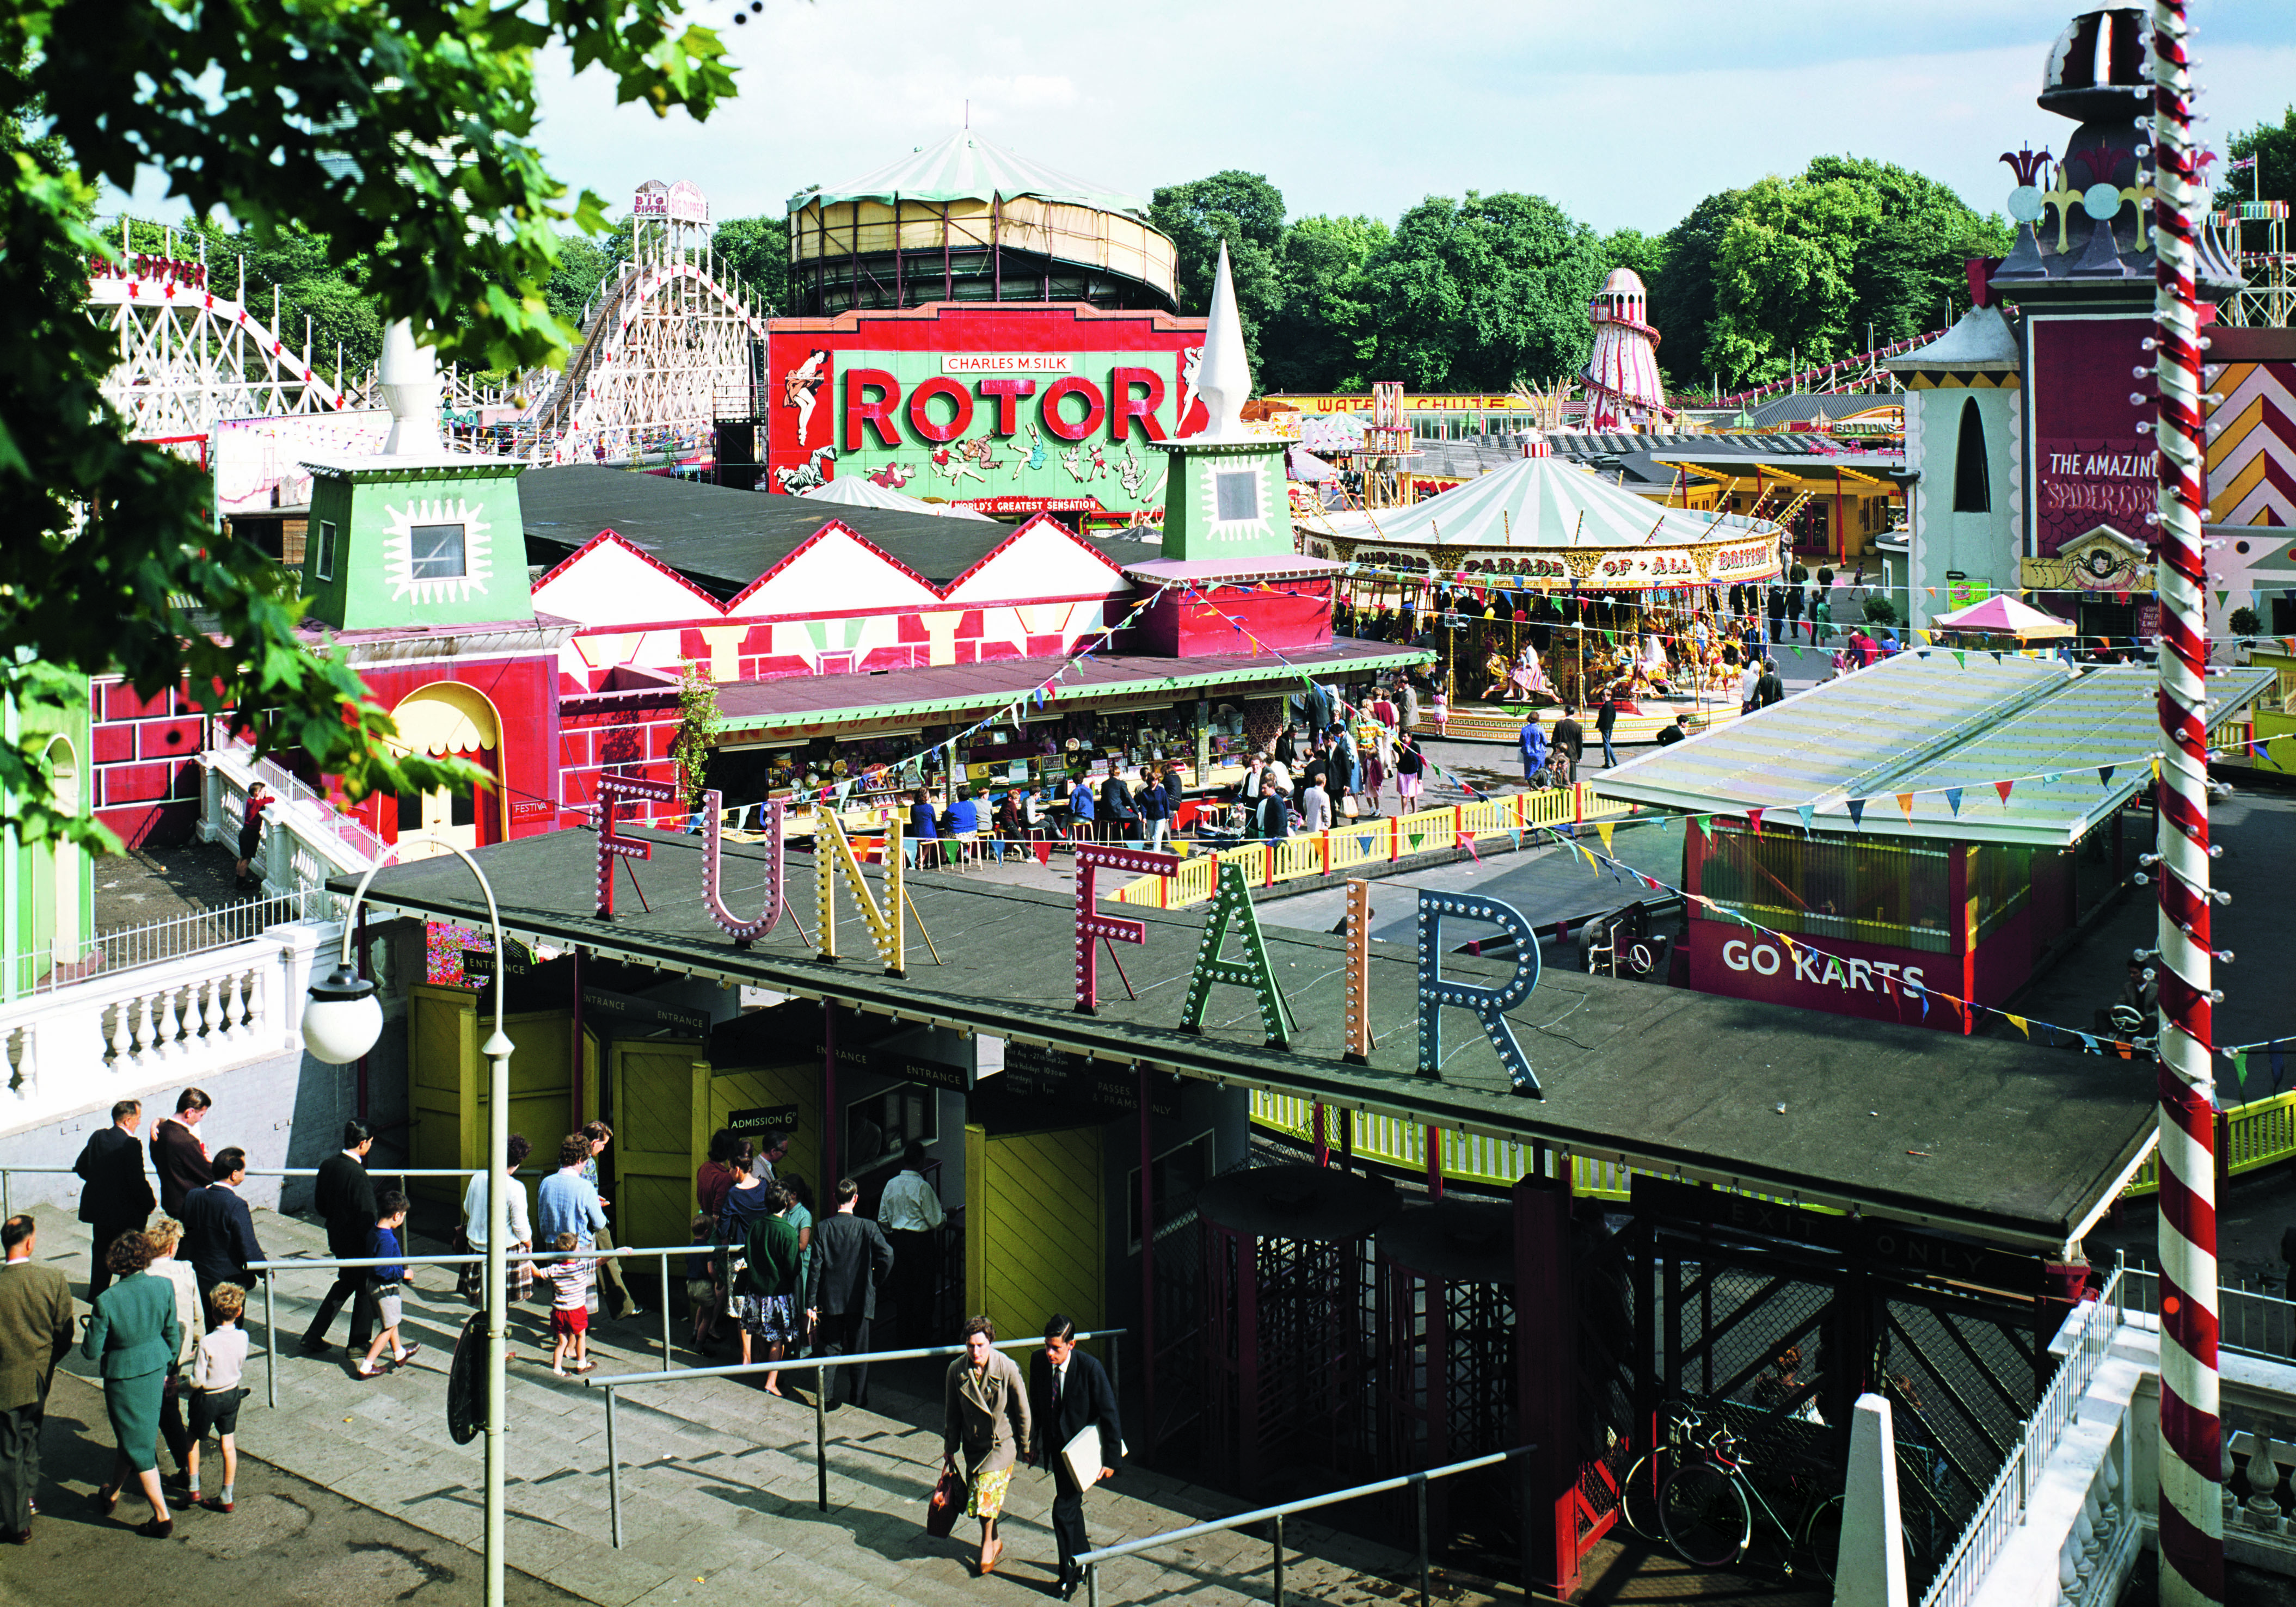 1951. Battersea Fun Fair, opened in 1951, was part of the Festival of Britain celebrations.